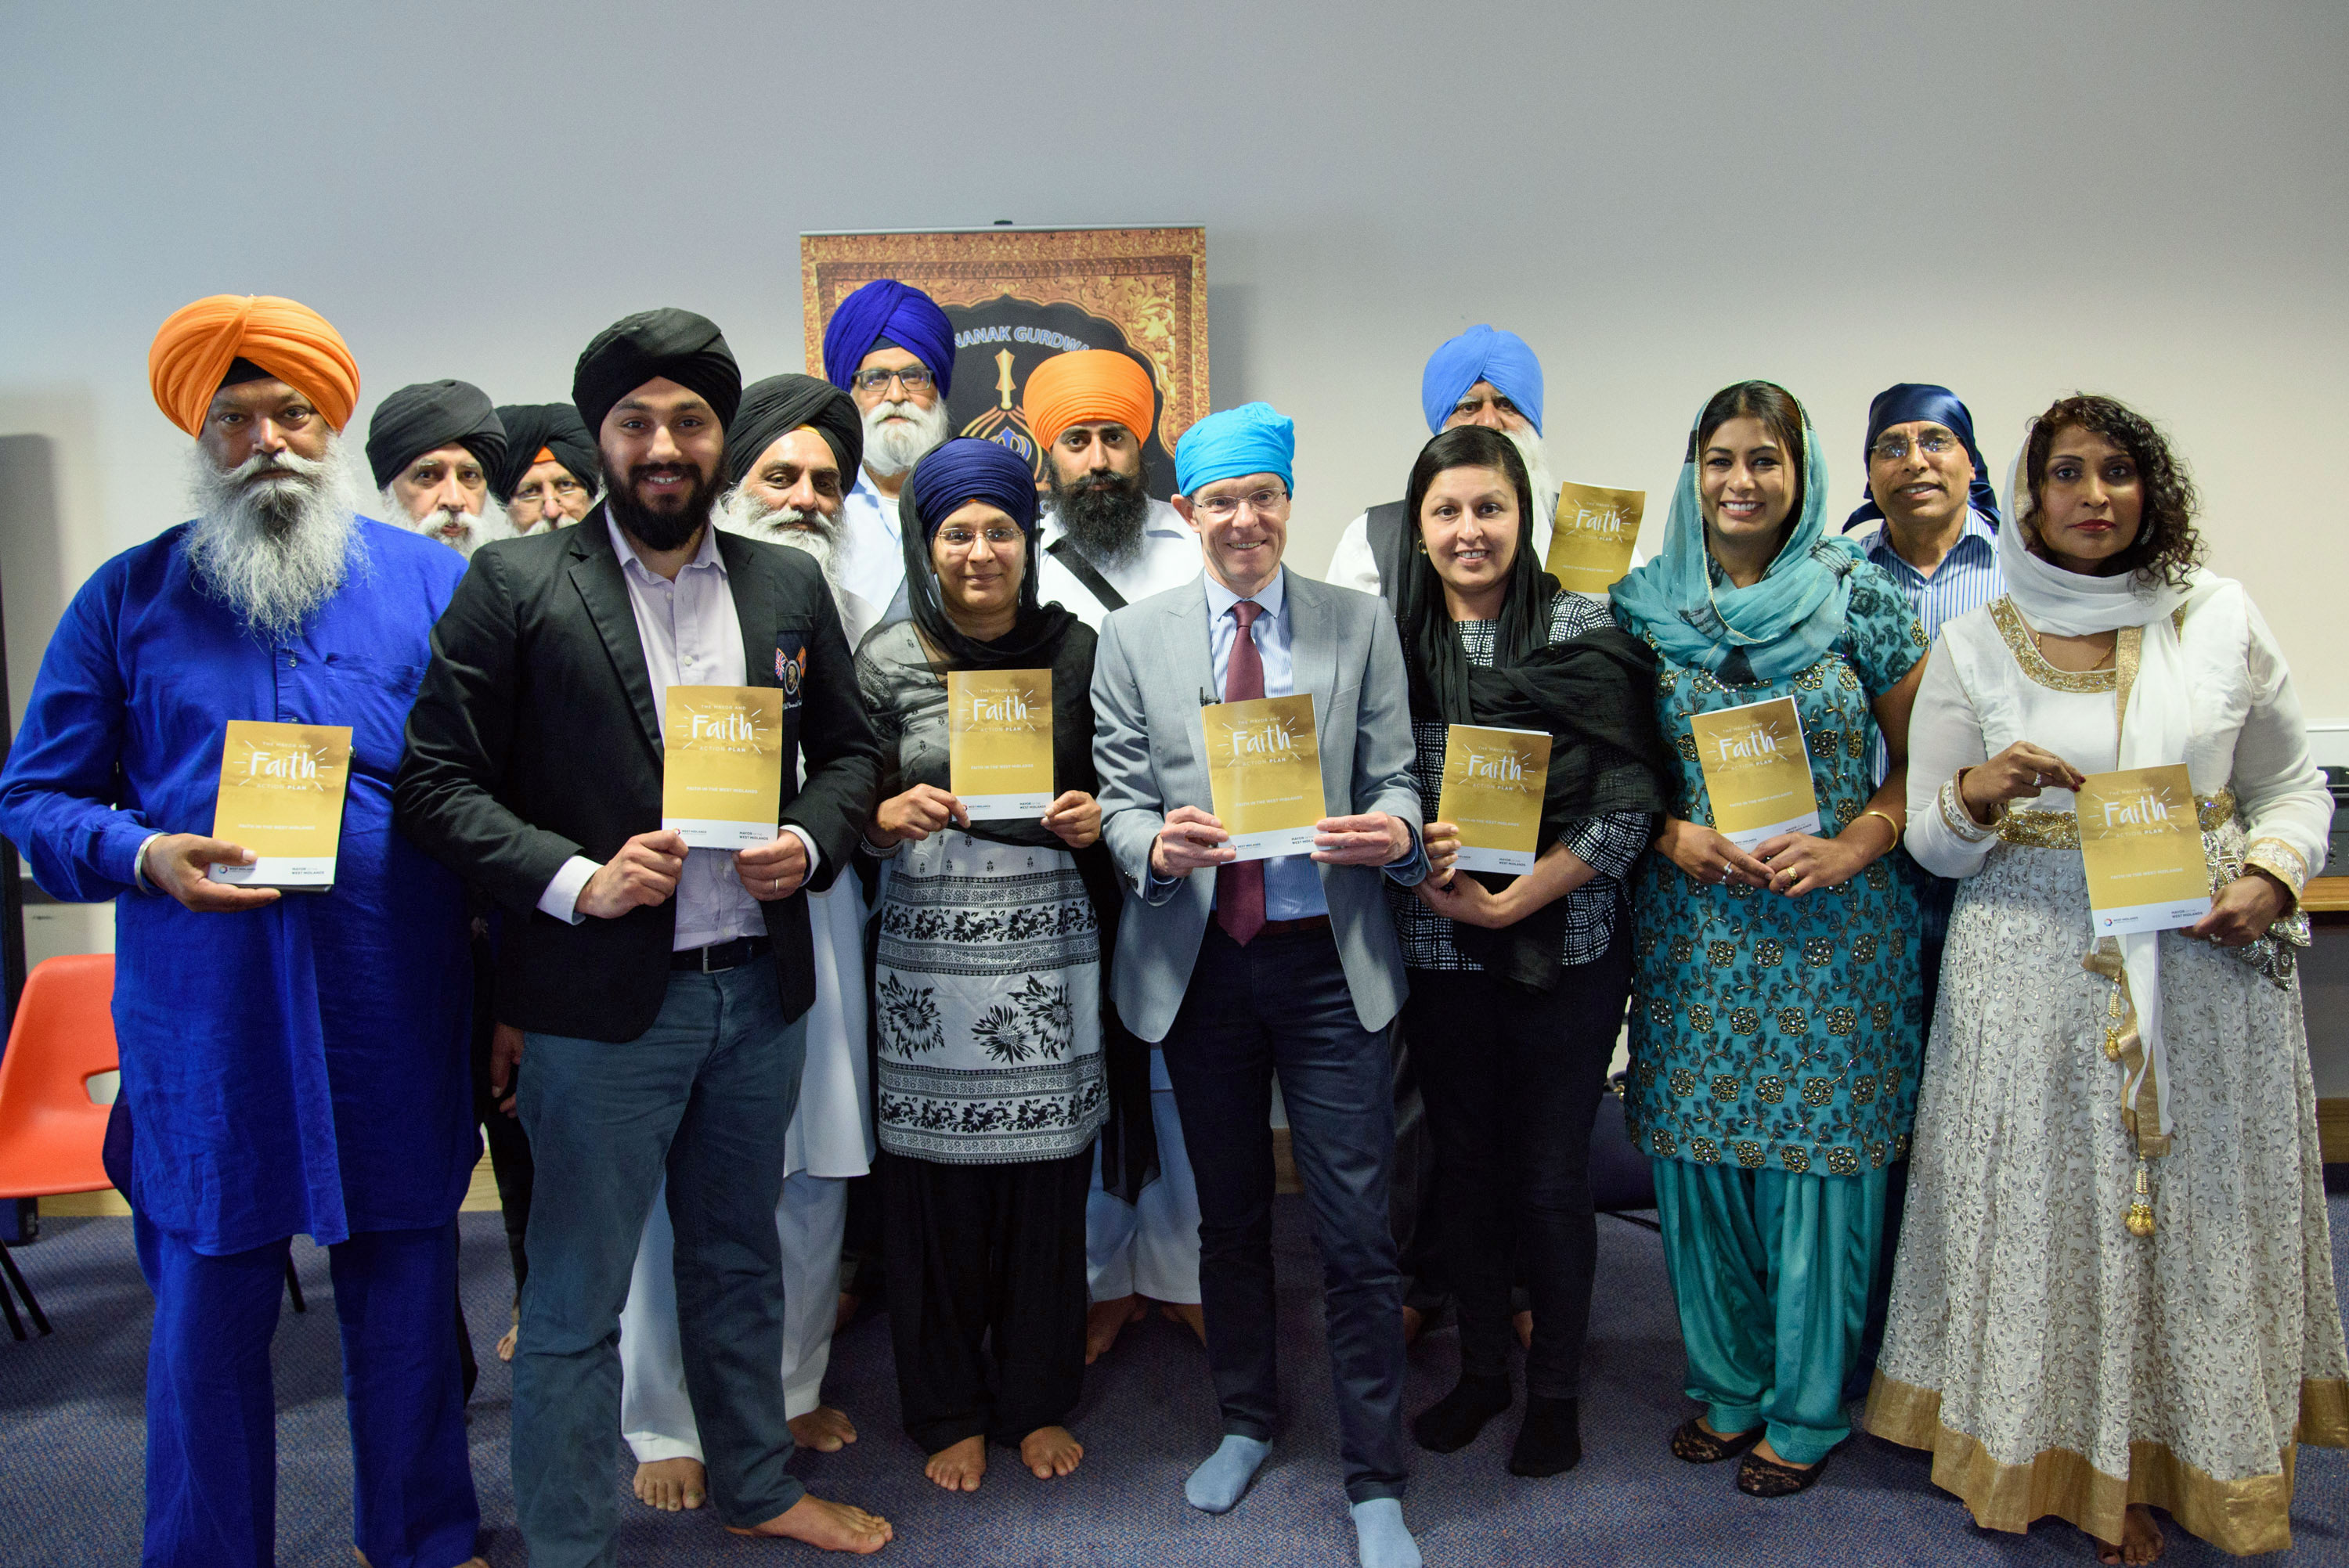 Faiths unite to help Mayor launch action plan